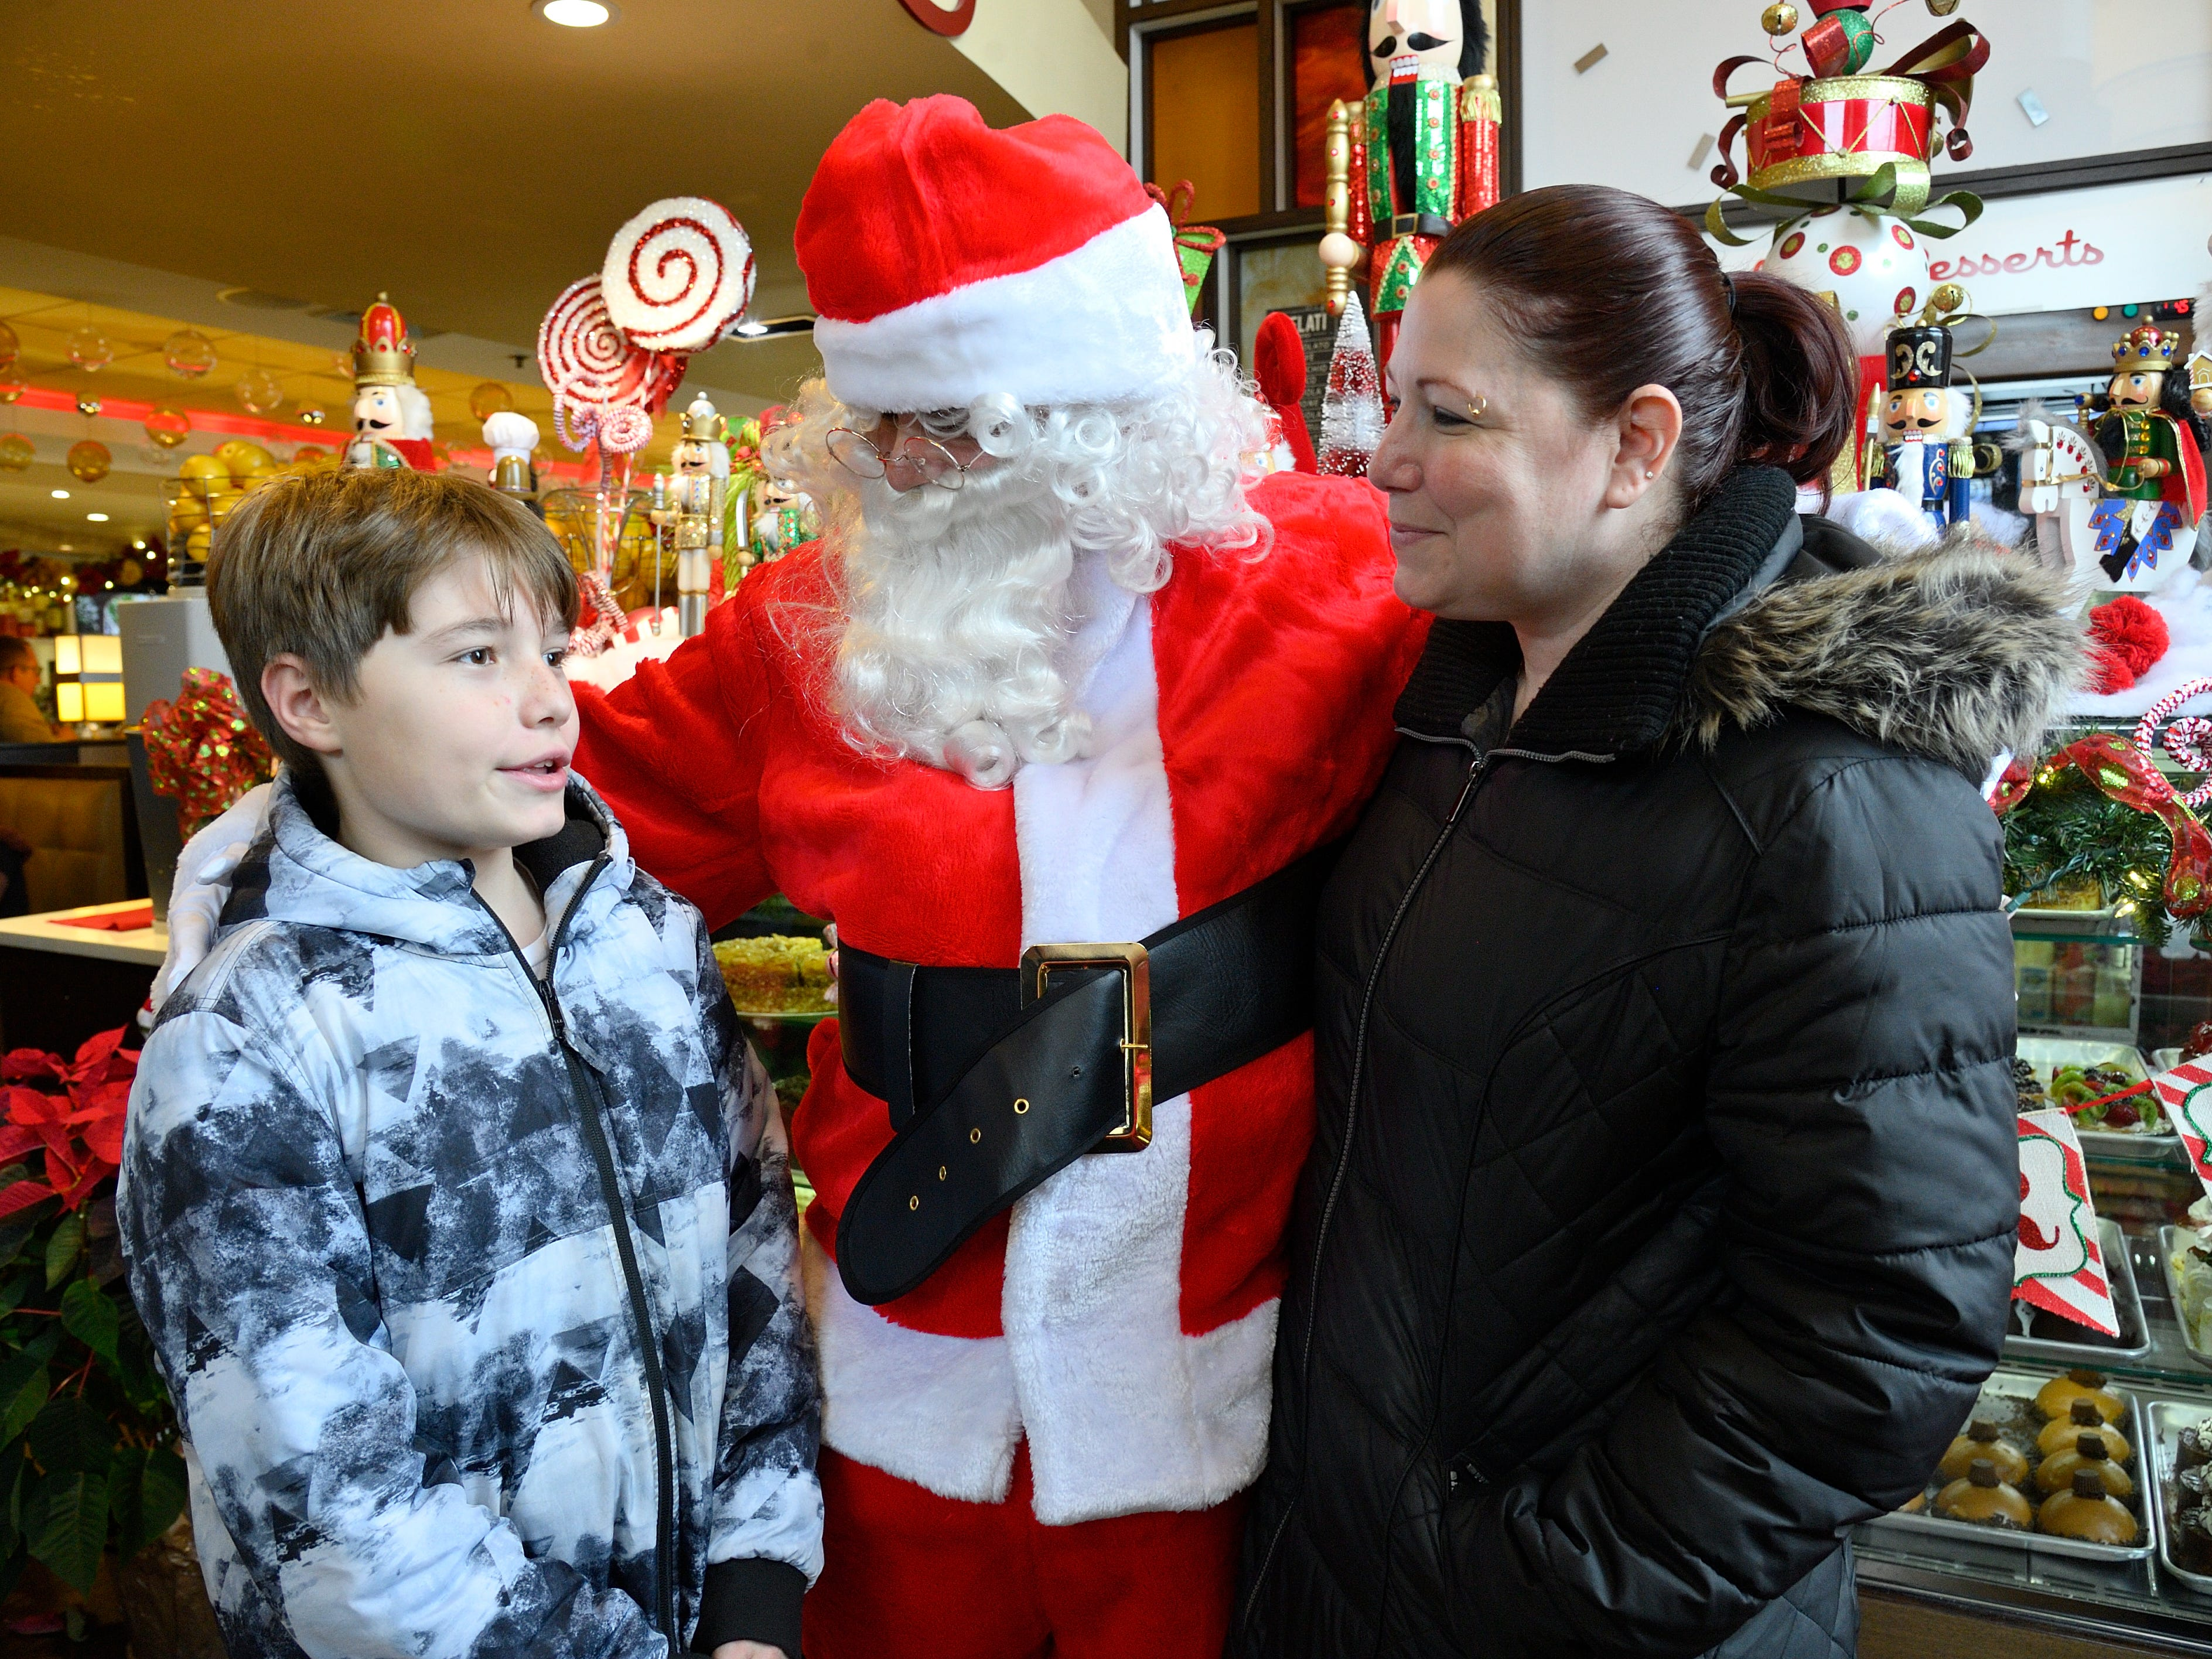 Santa greets Braedon McAuade and his mom Jeanette of Rutherford at the Candlewyck Diner in East Rutherford on Saturday, Dec. 15, 2018